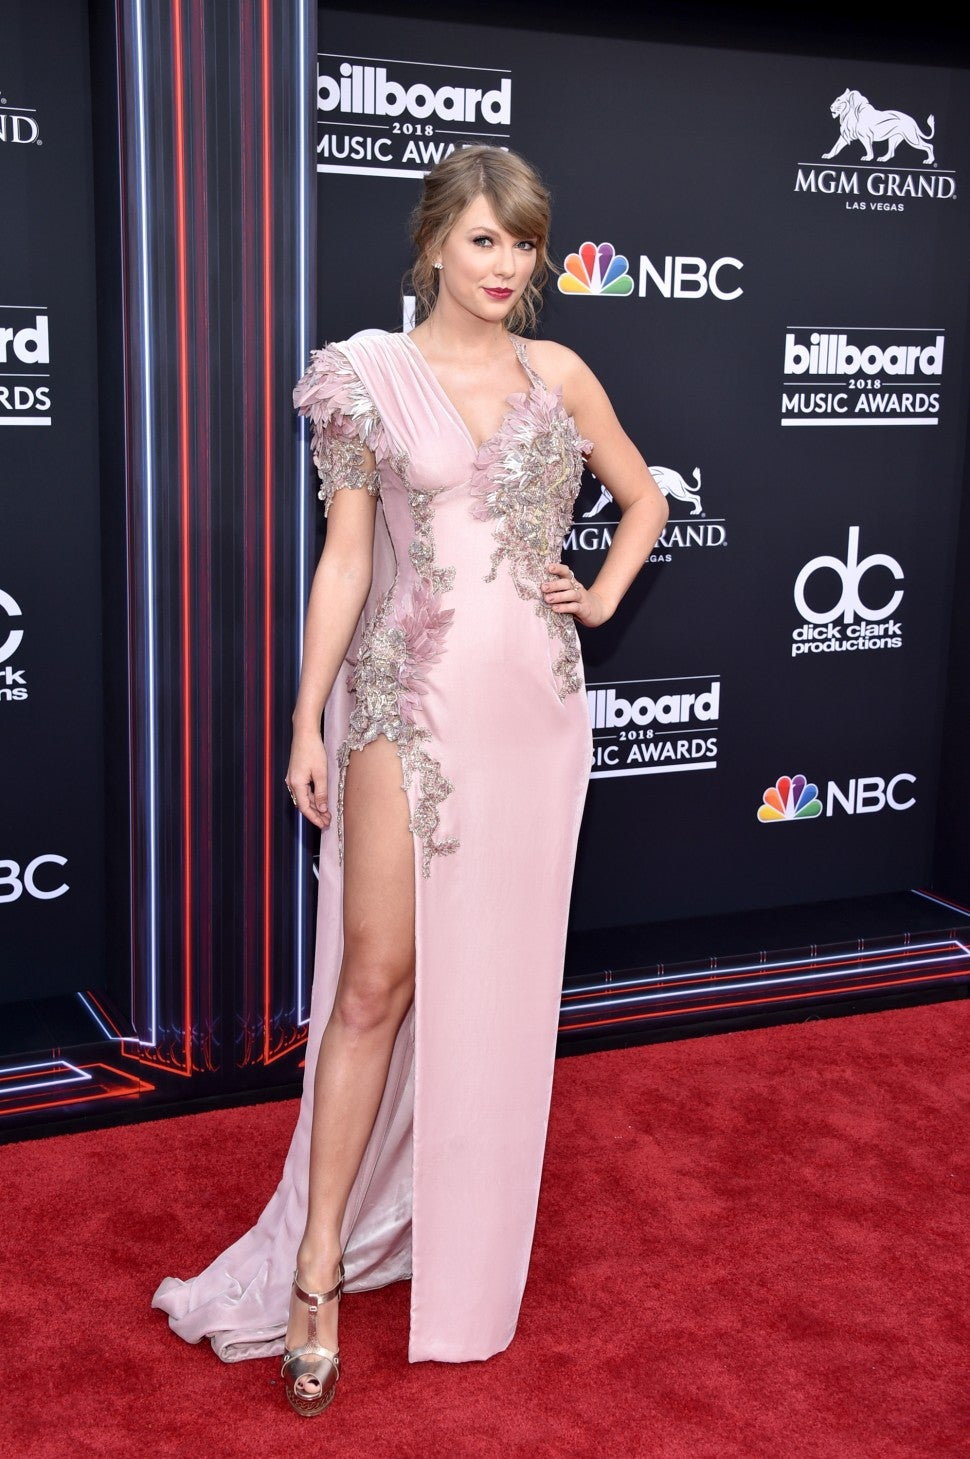 Taylor Swift at 2018 billboard awards